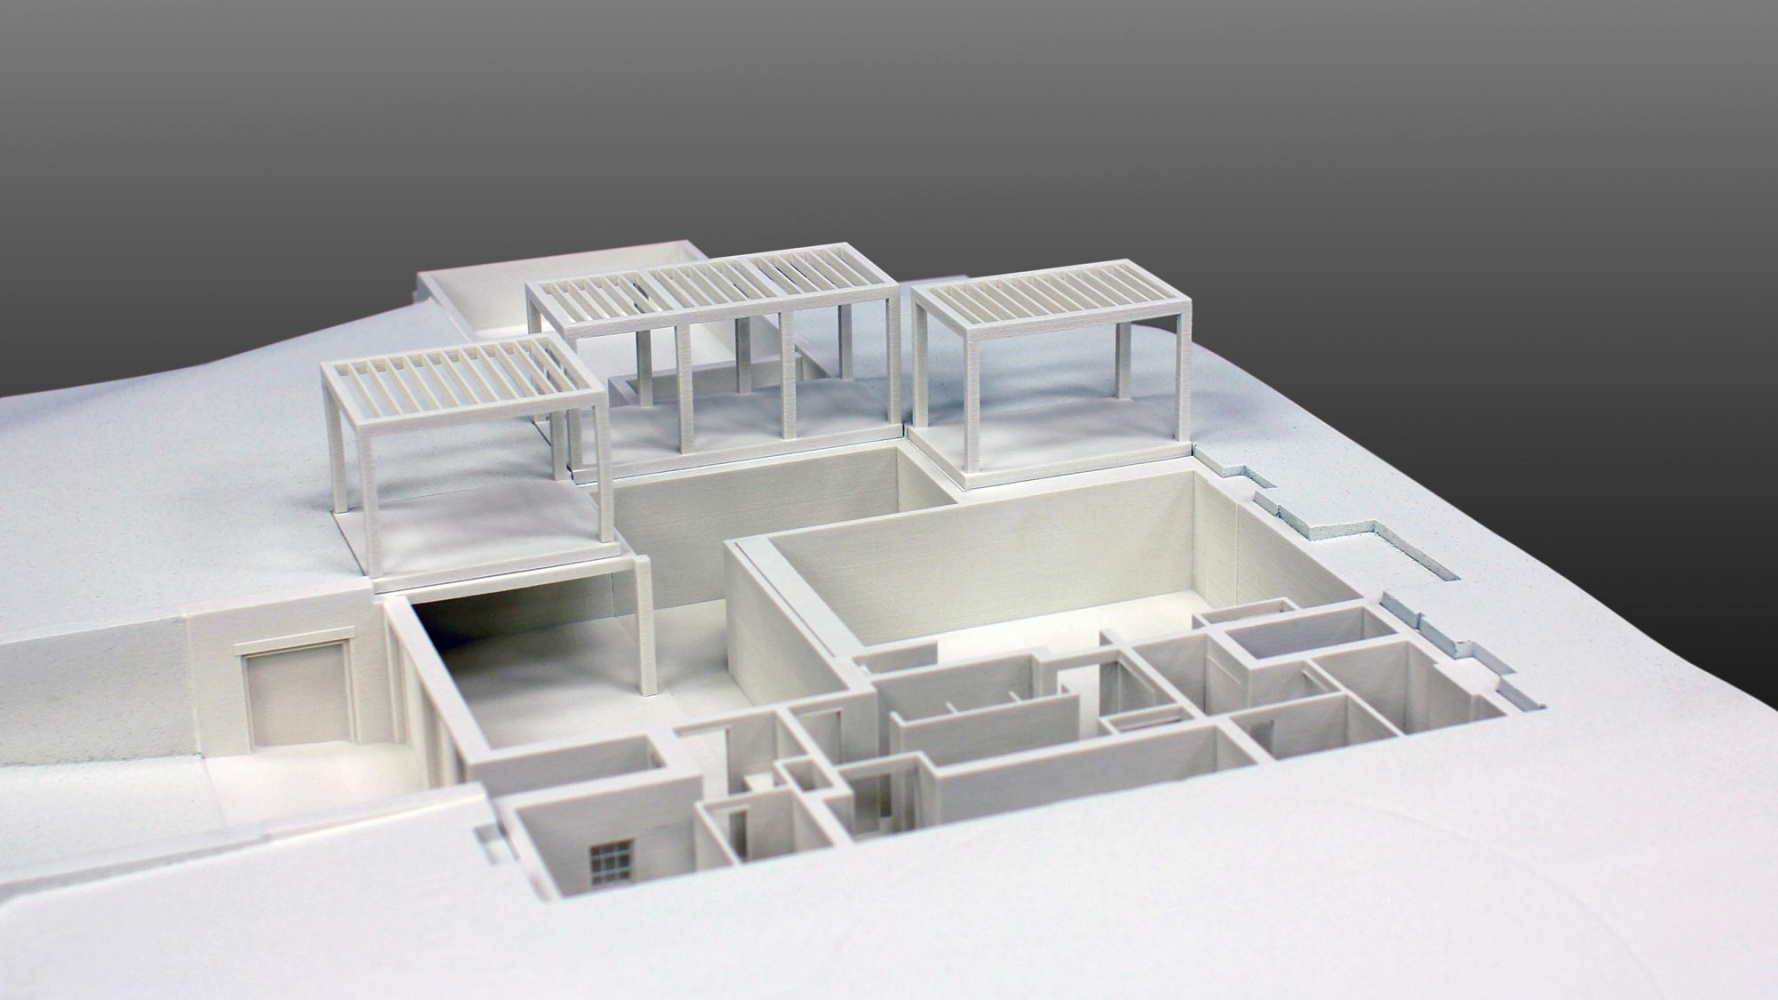 3d printing house plans for Print architectural plans